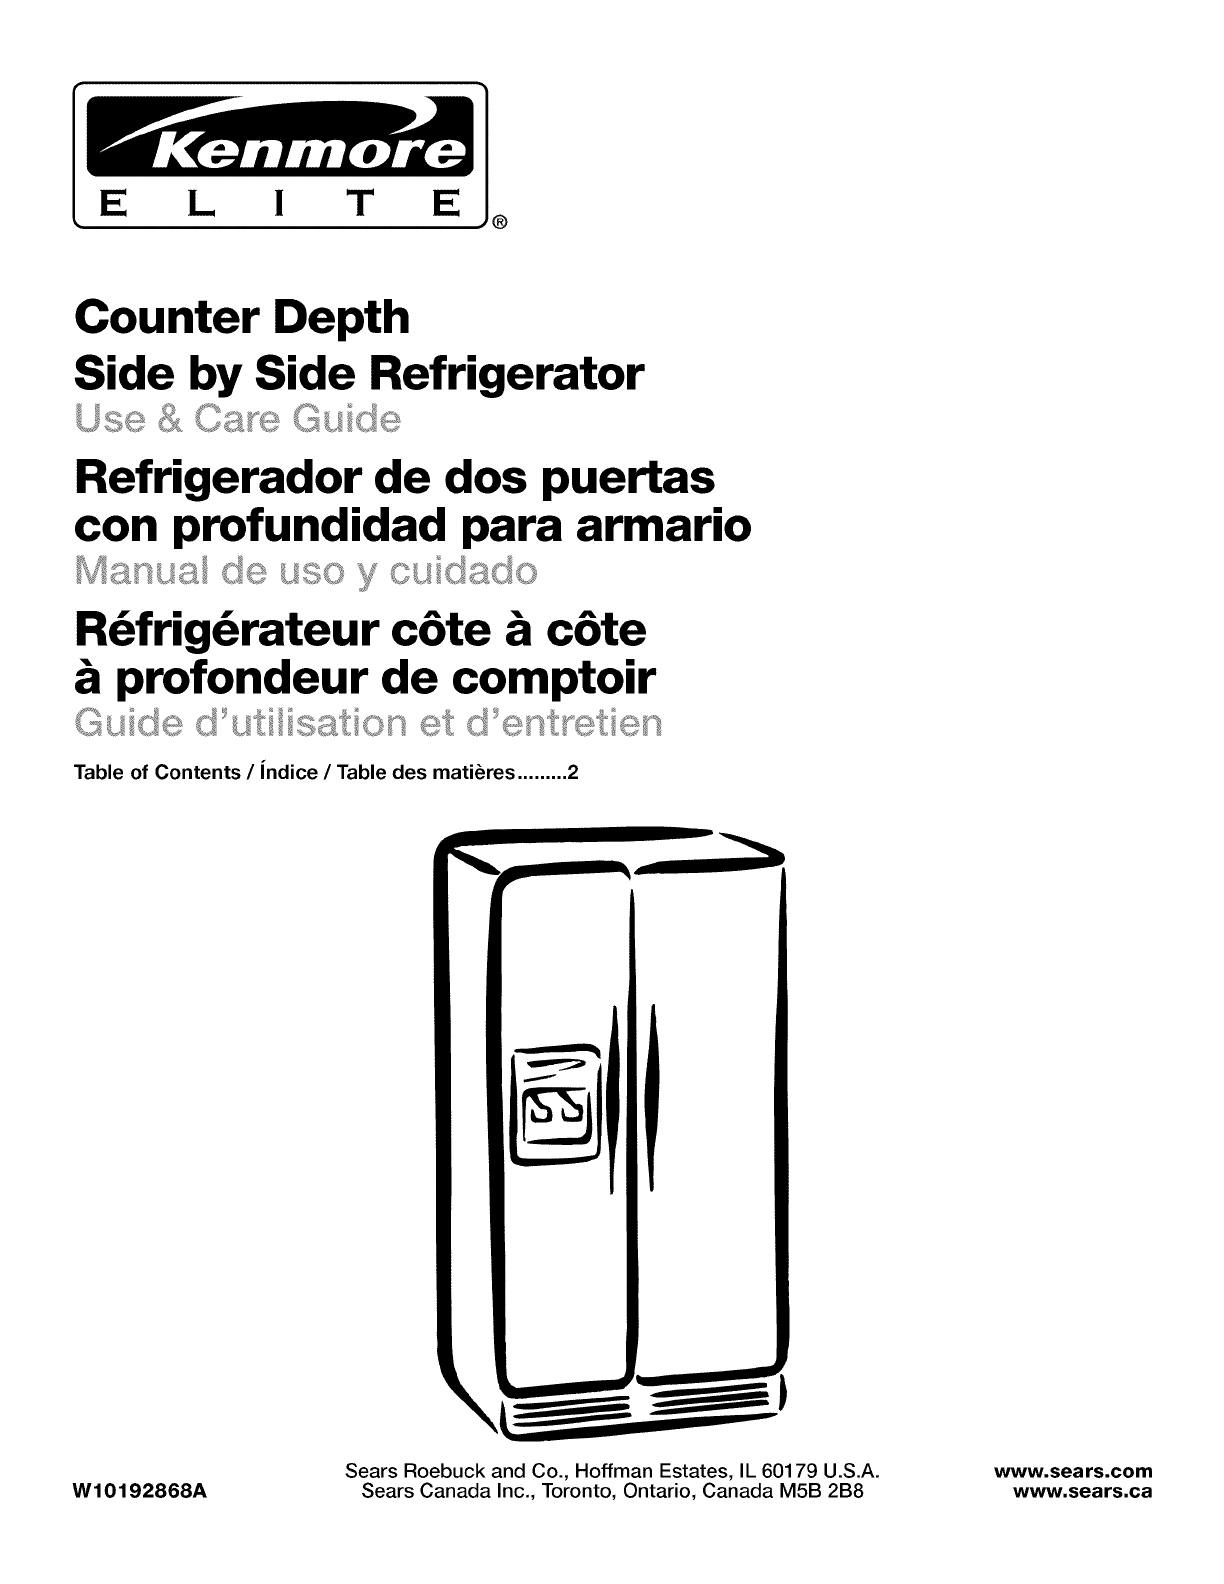 Kenmore Refrigerator 10645429800 User Guide